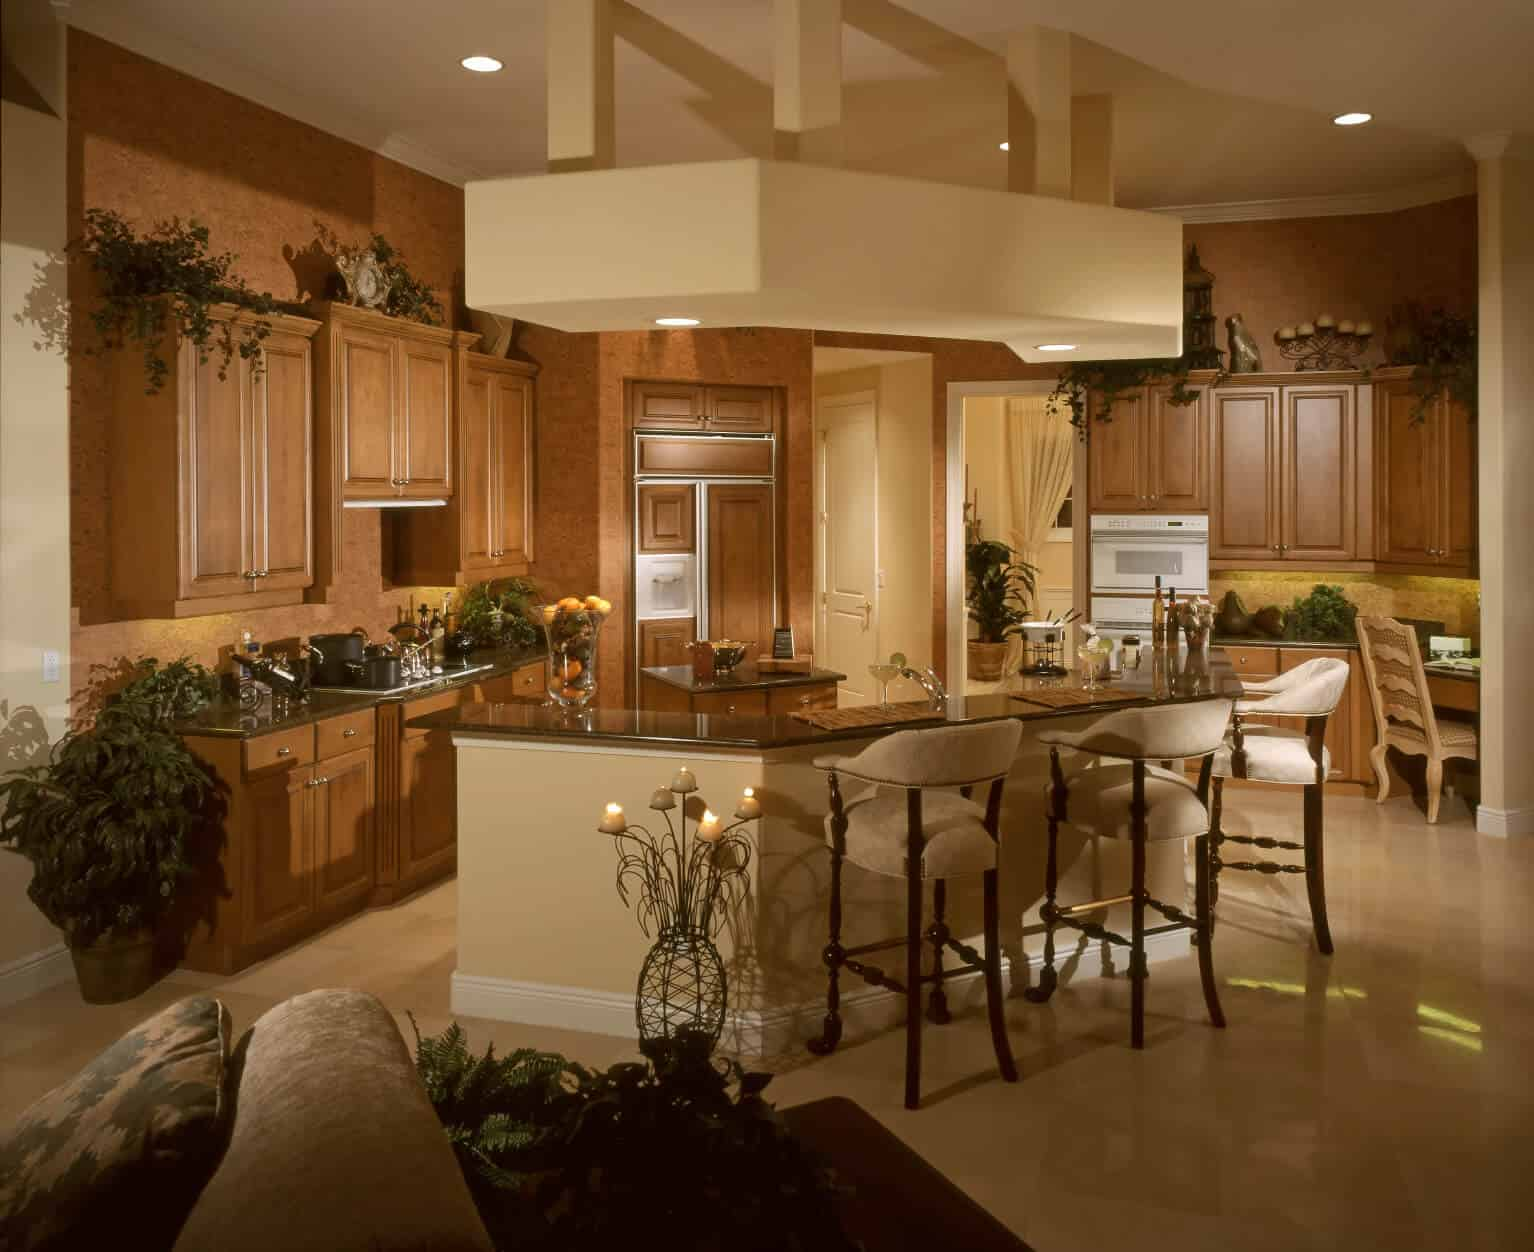 Kitchen island ideas Lighting Natural Tones Throughout This Space With Cshape Island Complete With Dining Seating Home Stratosphere 90 Different Kitchen Island Ideas And Designs photos